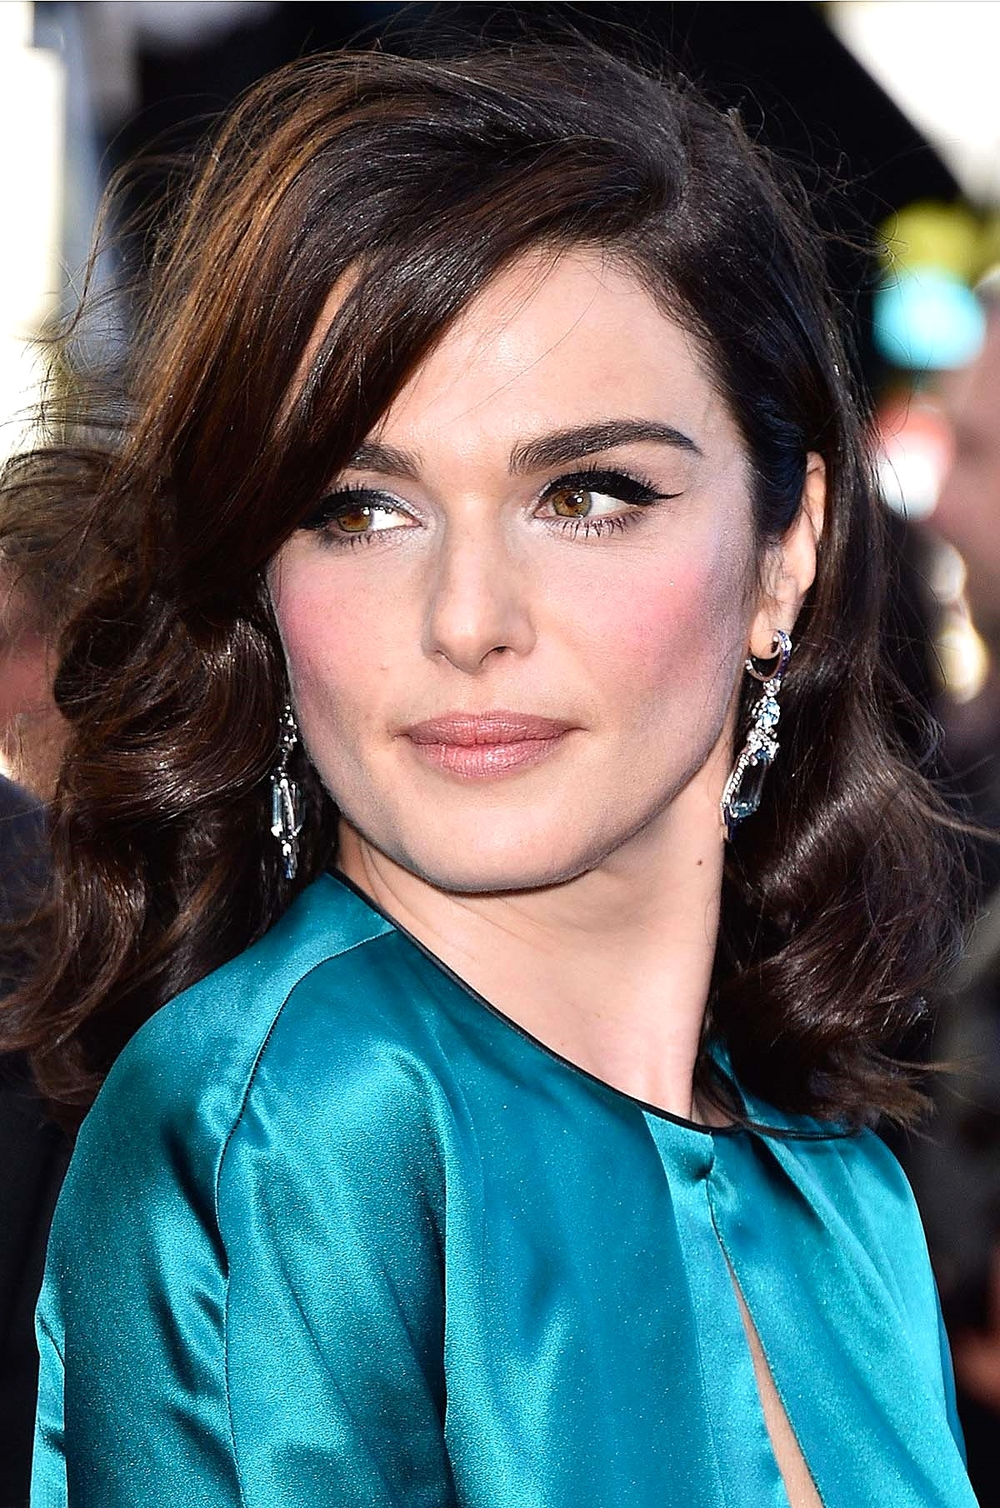 Rachel Weisz at the 'Youth' premiere             Photo by Getty